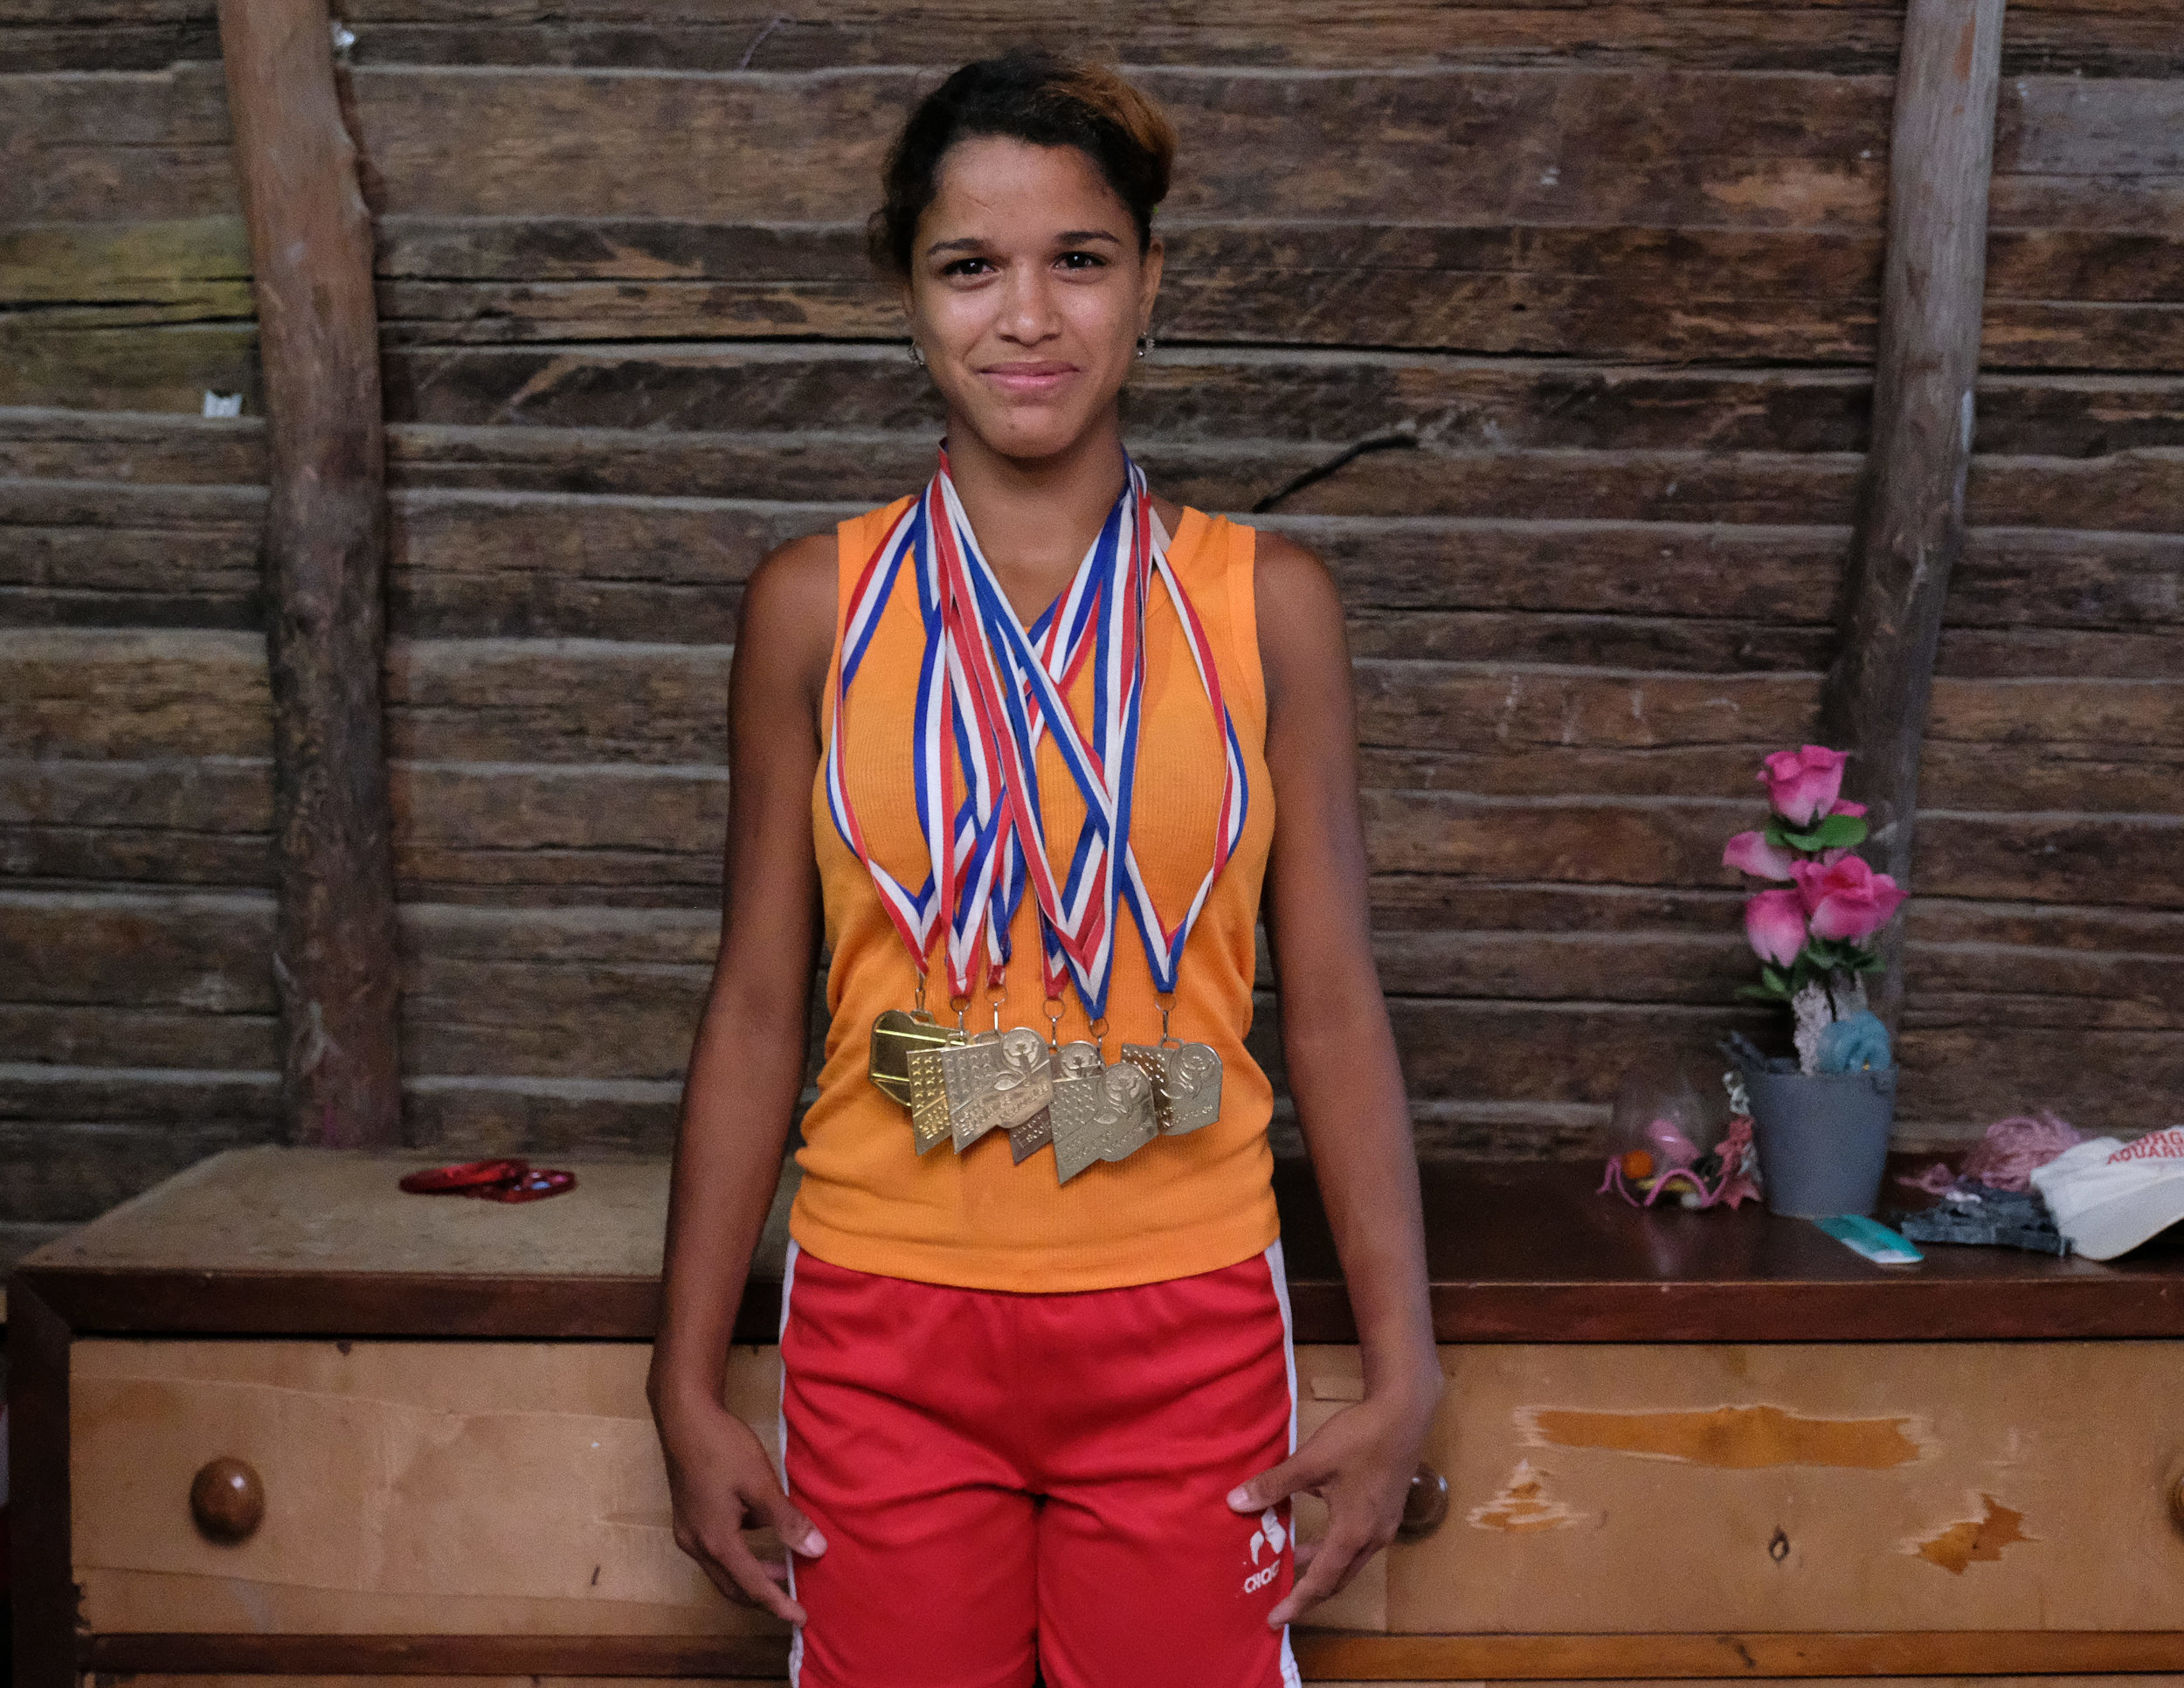 Sporting her 6 Gold Medals in track events